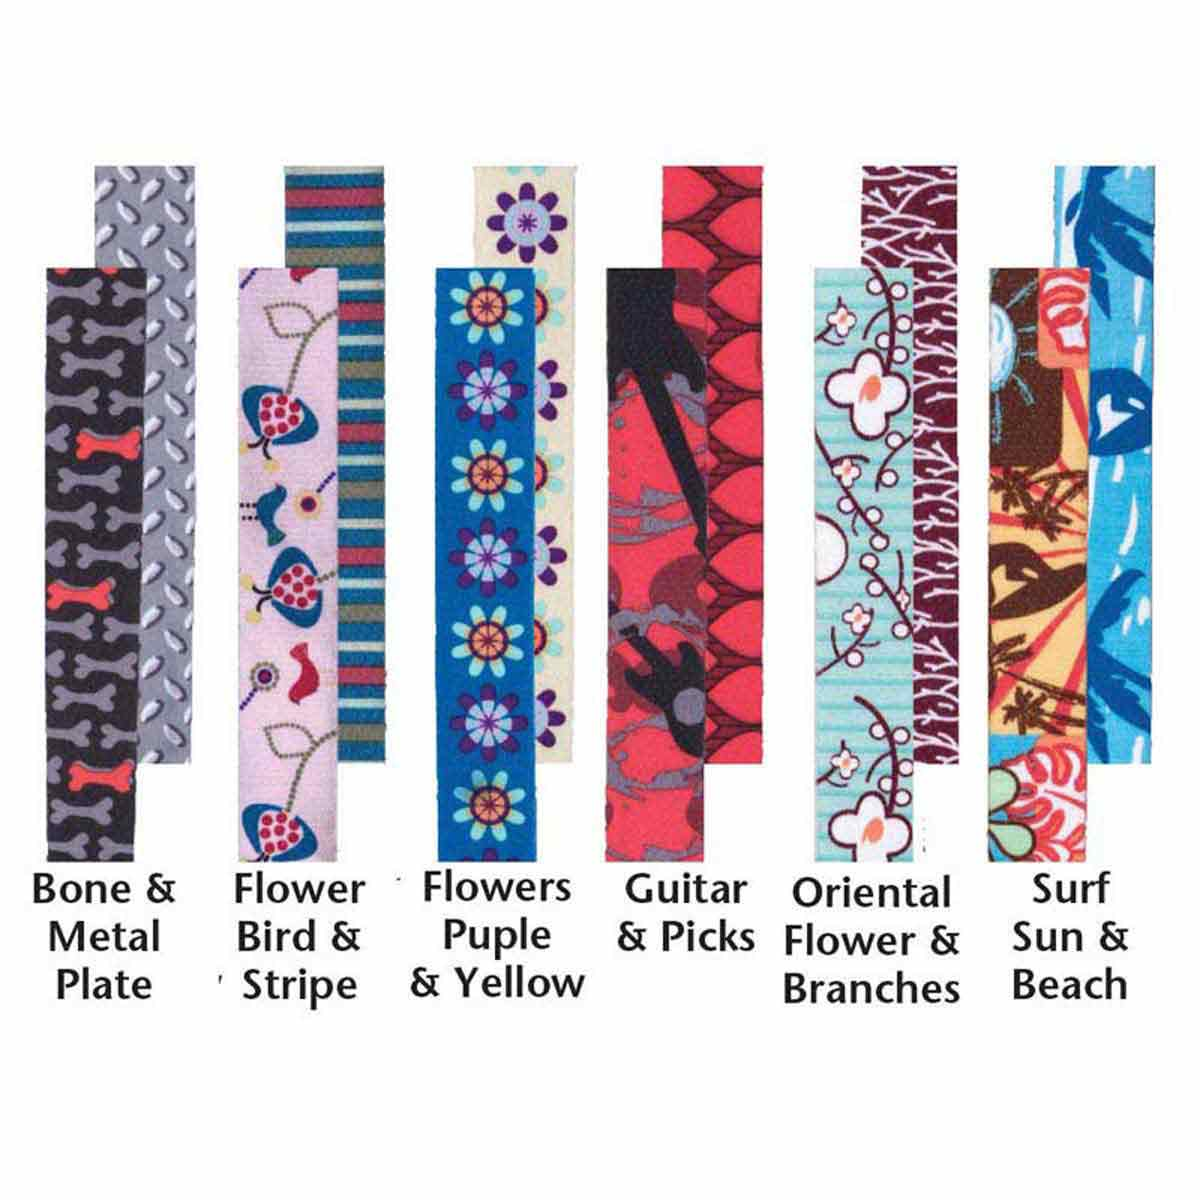 Assorted Patterns - Coastal Sublime Adjustable Dog Collars - 1.5 inch by 18-26 inches